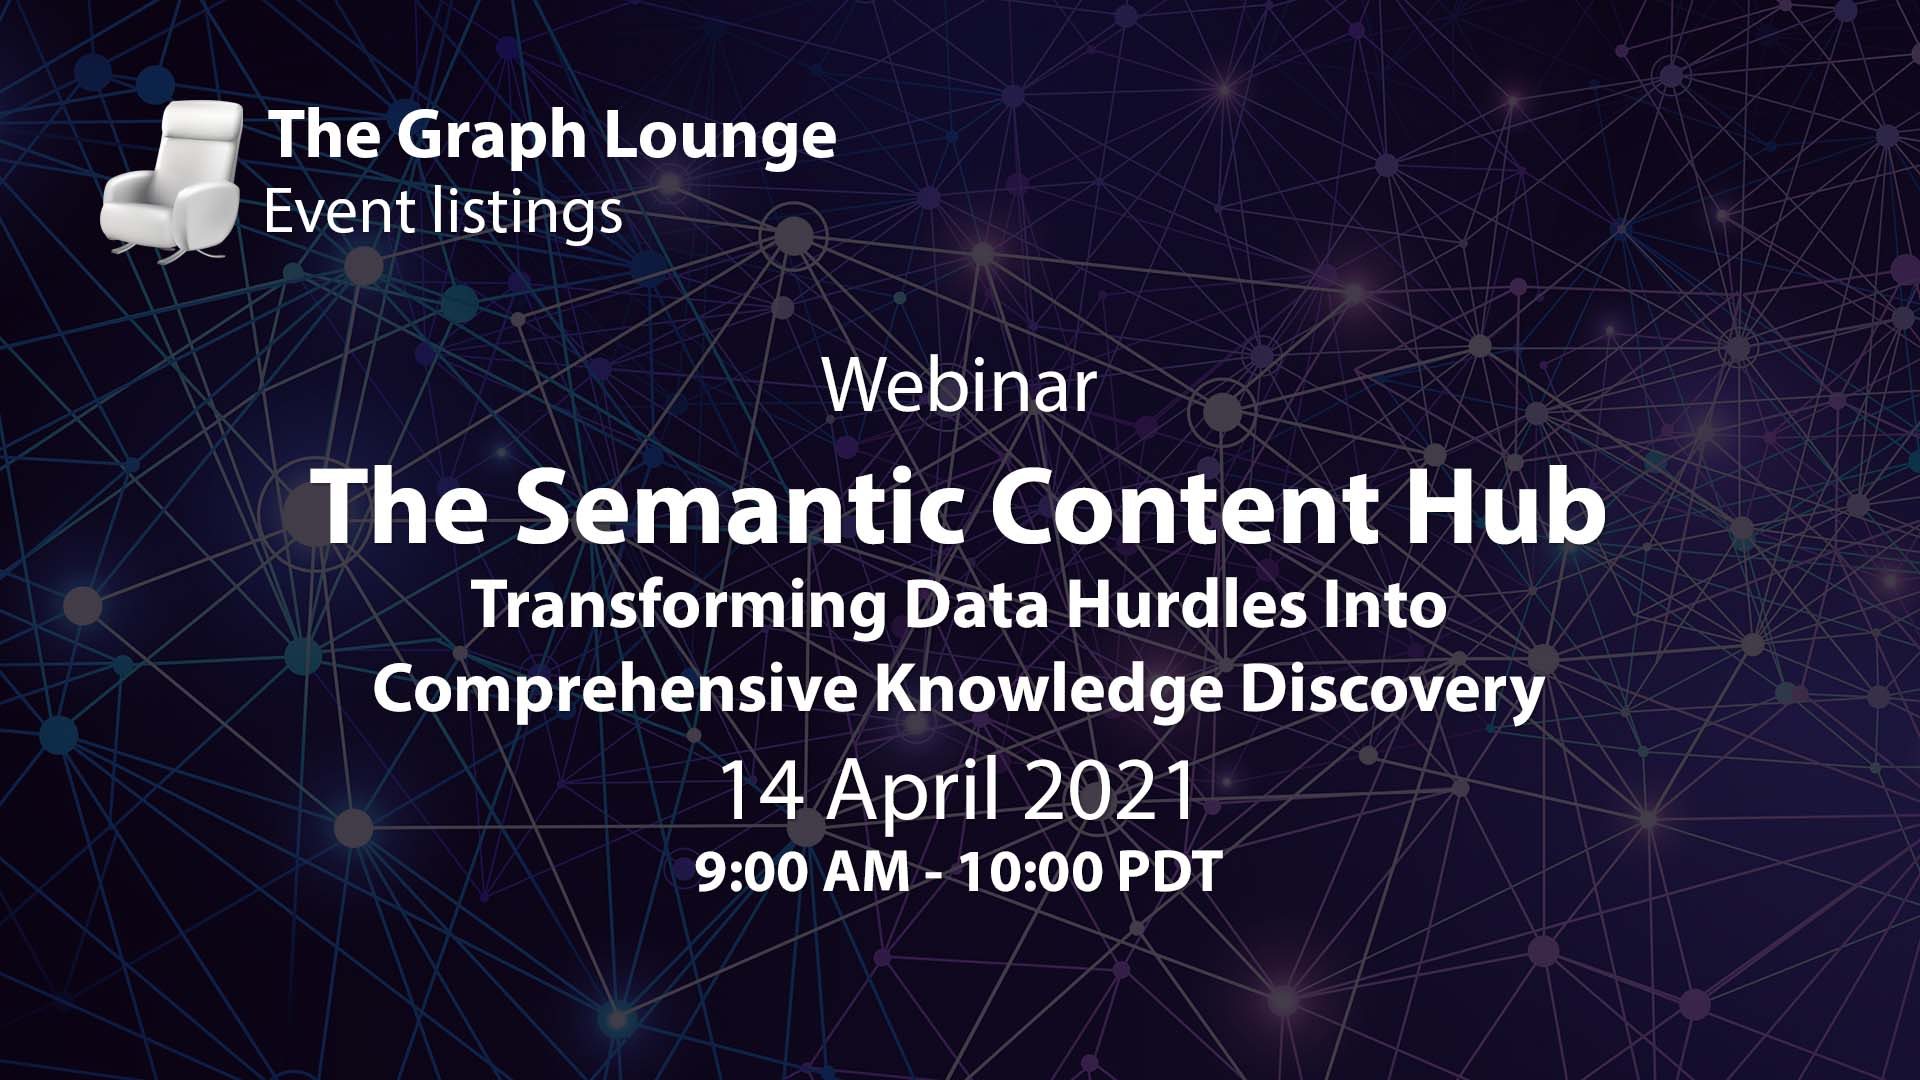 The Semantic Content Hub: Transforming Data Hurdles Into Comprehensive Knowledge Discovery